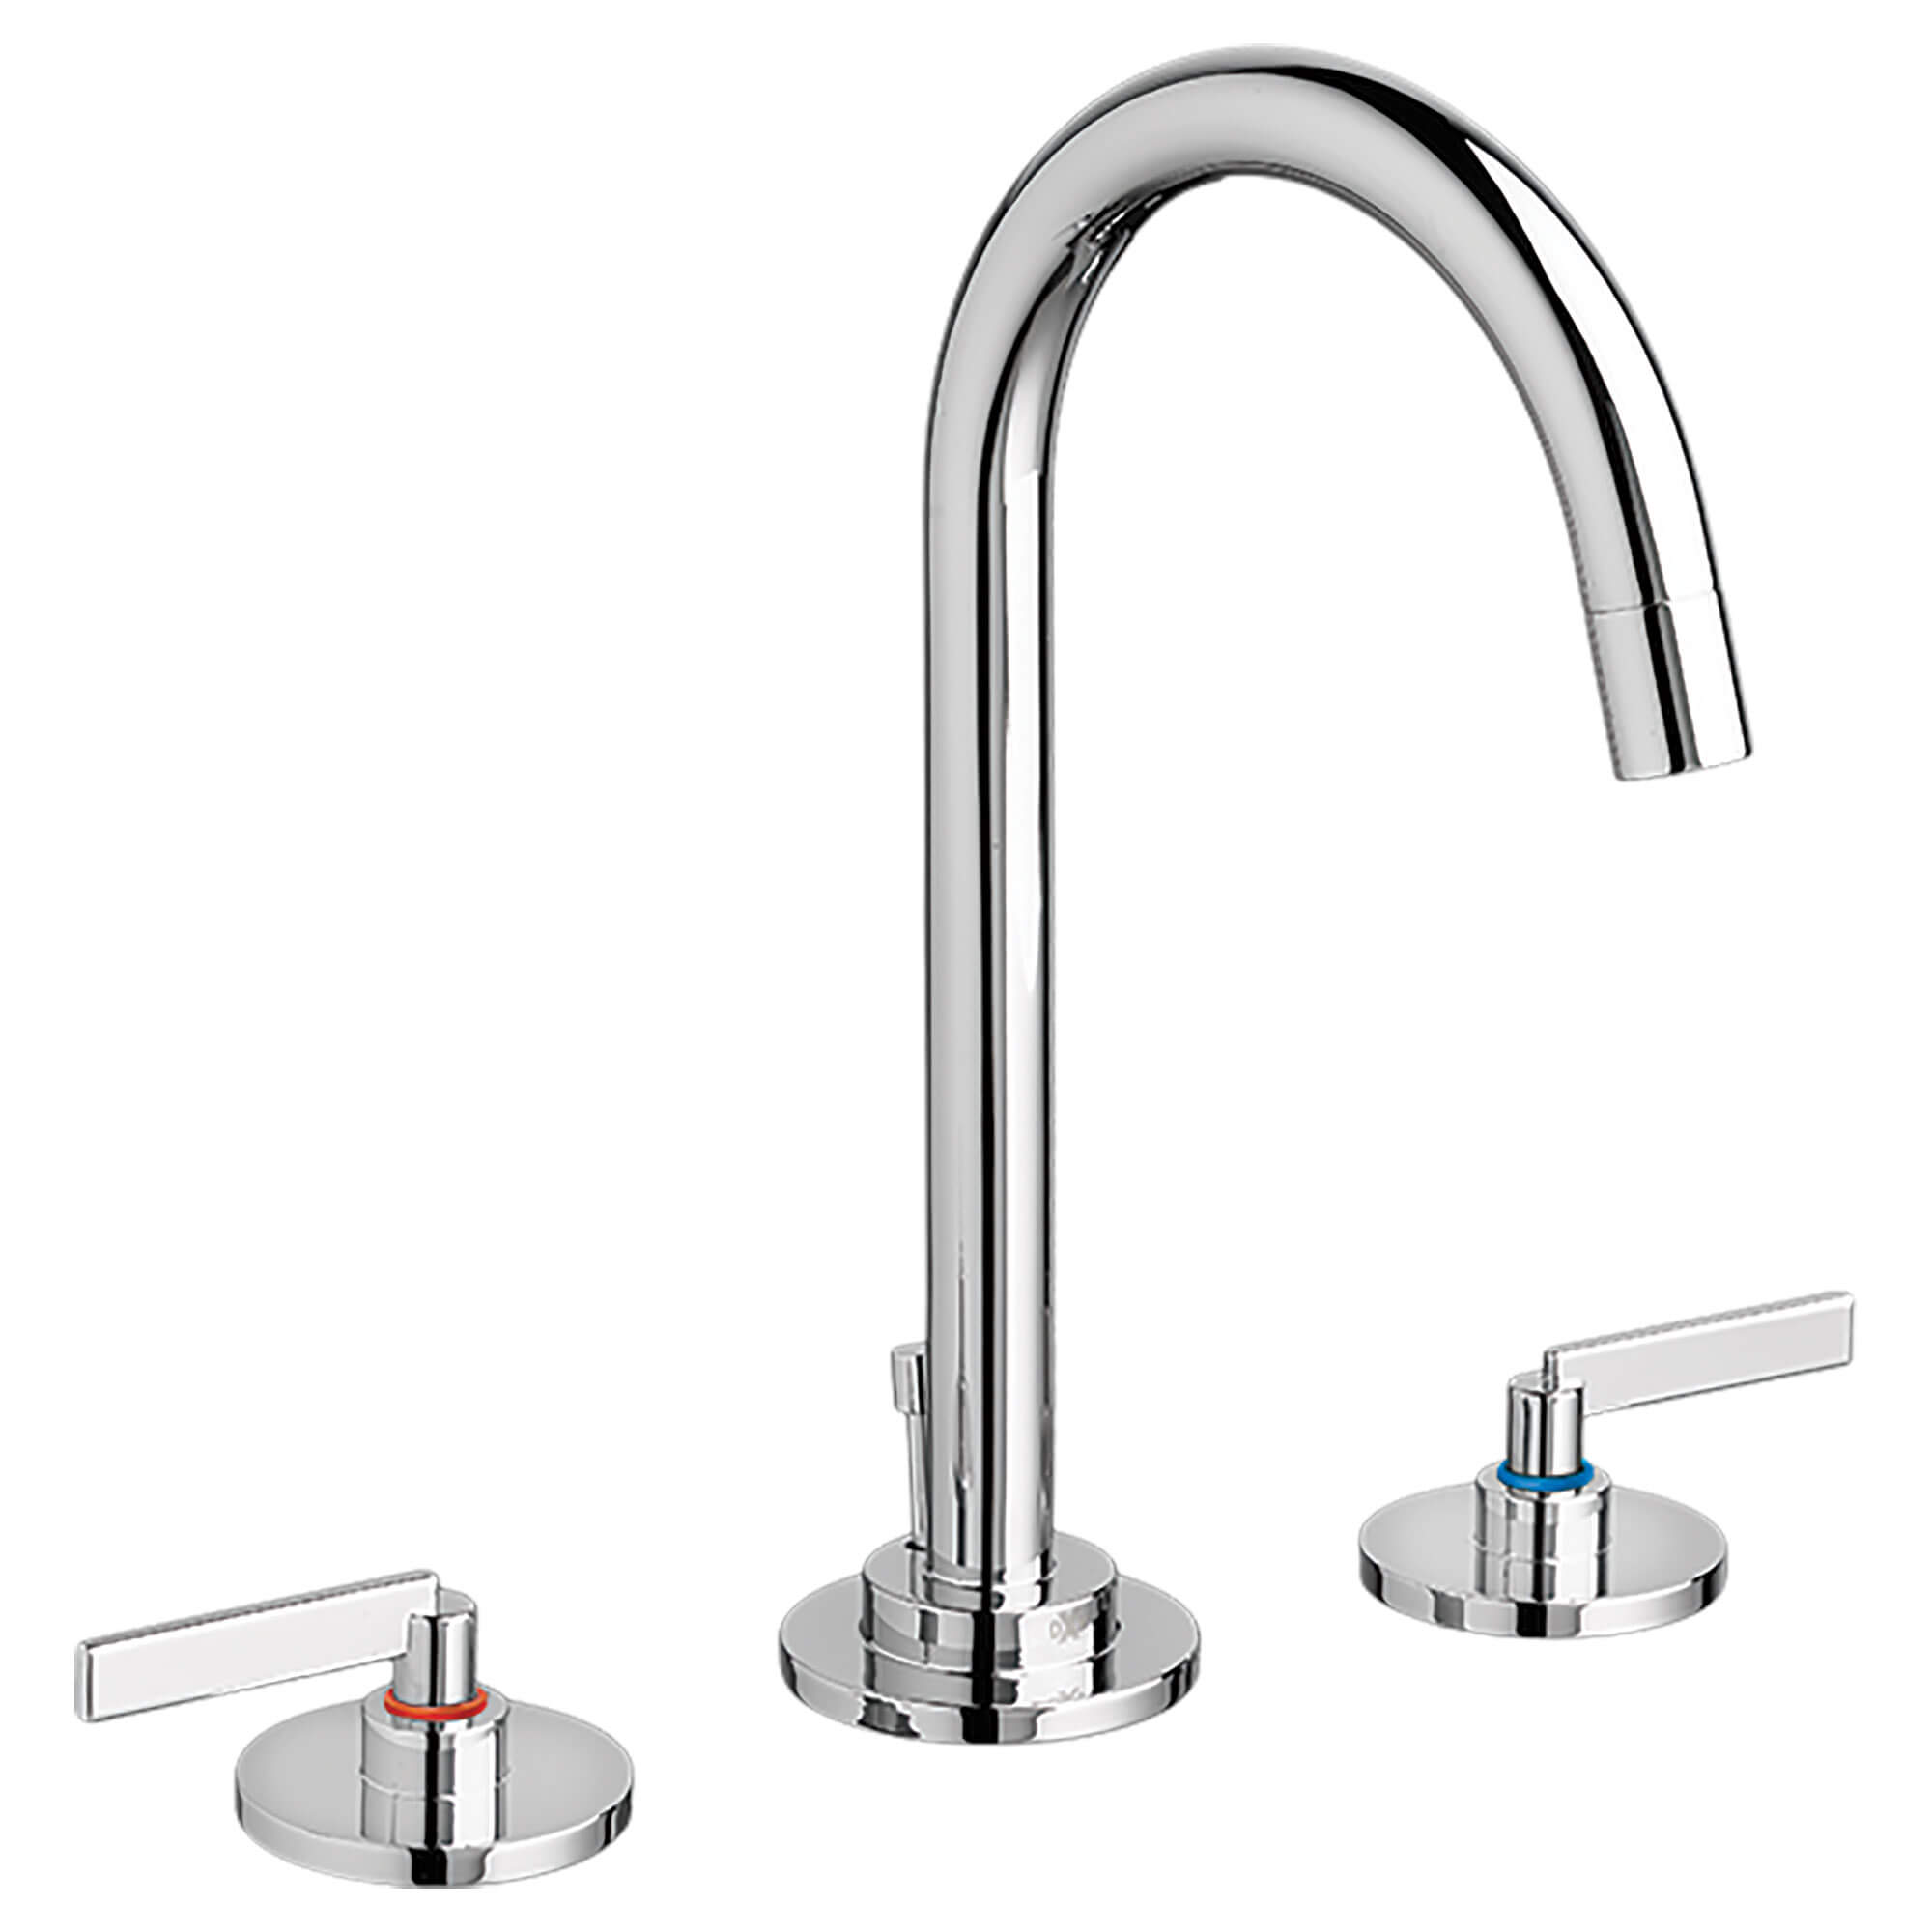 Percy Widespread Bathroom Faucet with Lever Handles - Projects Model